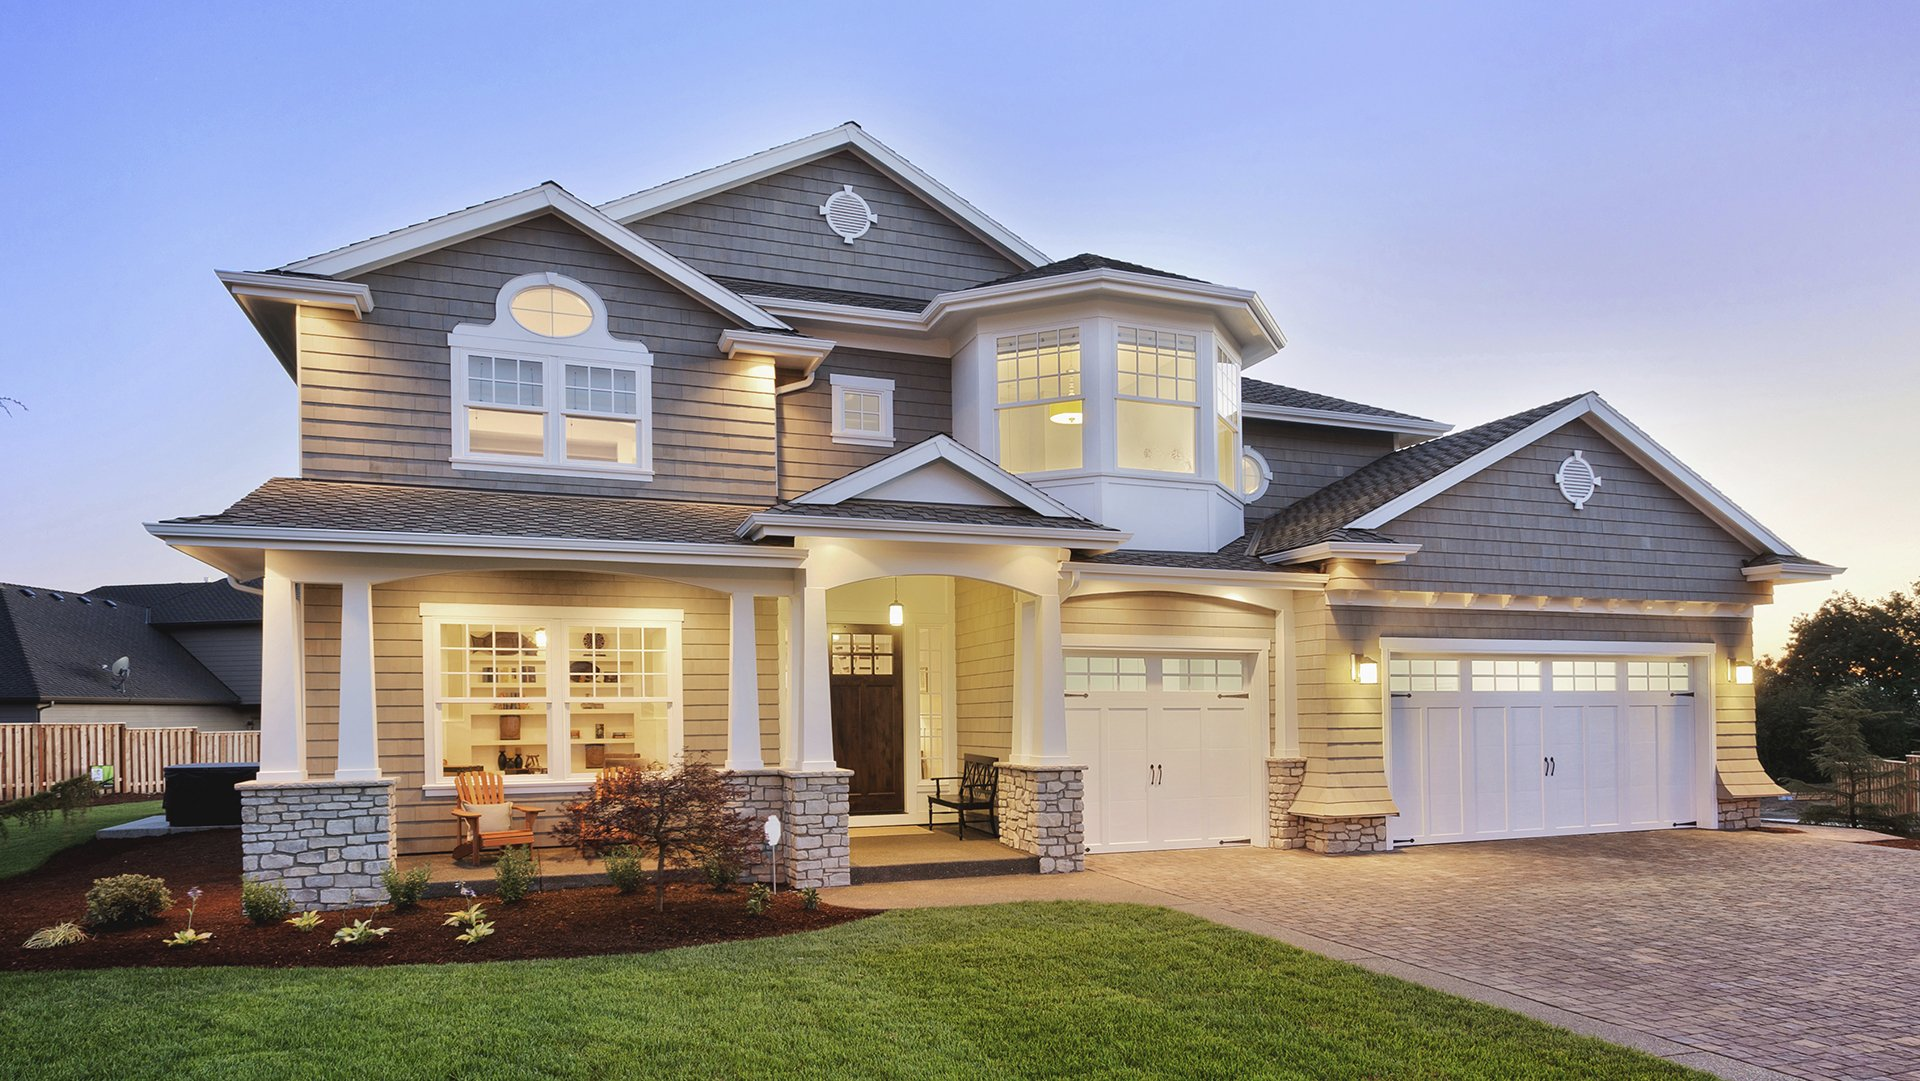 Home Builder, Custom Home Builder and General Contractor Frequently Asked Questions slide 2